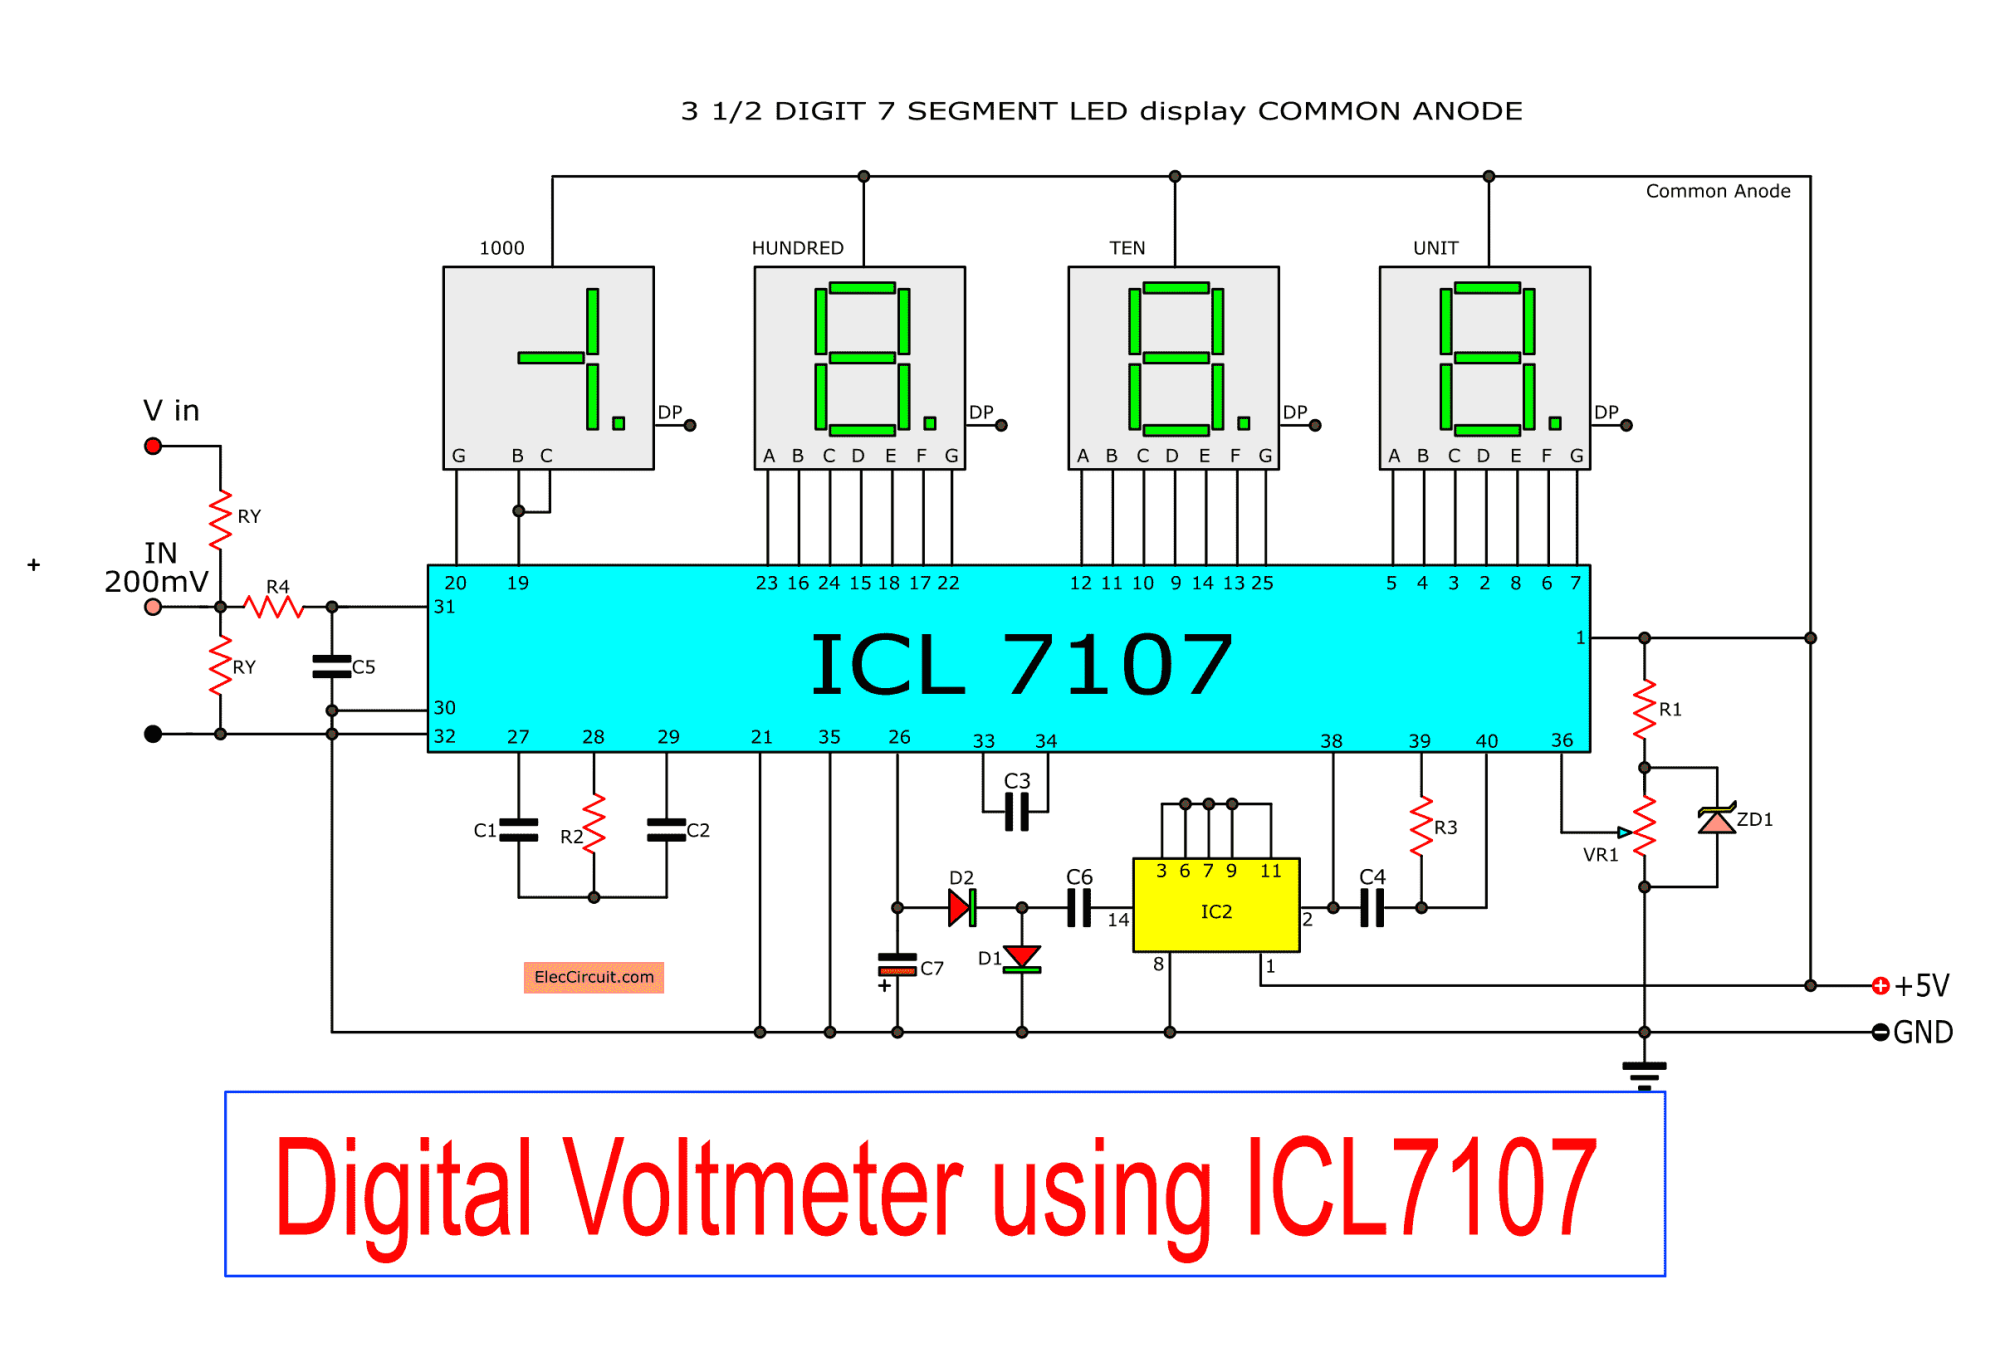 hight resolution of digital voltmeter circuit diagram using icl7107 7106 with pcb circuit digital voltmeter circuit diagram power supply circuit